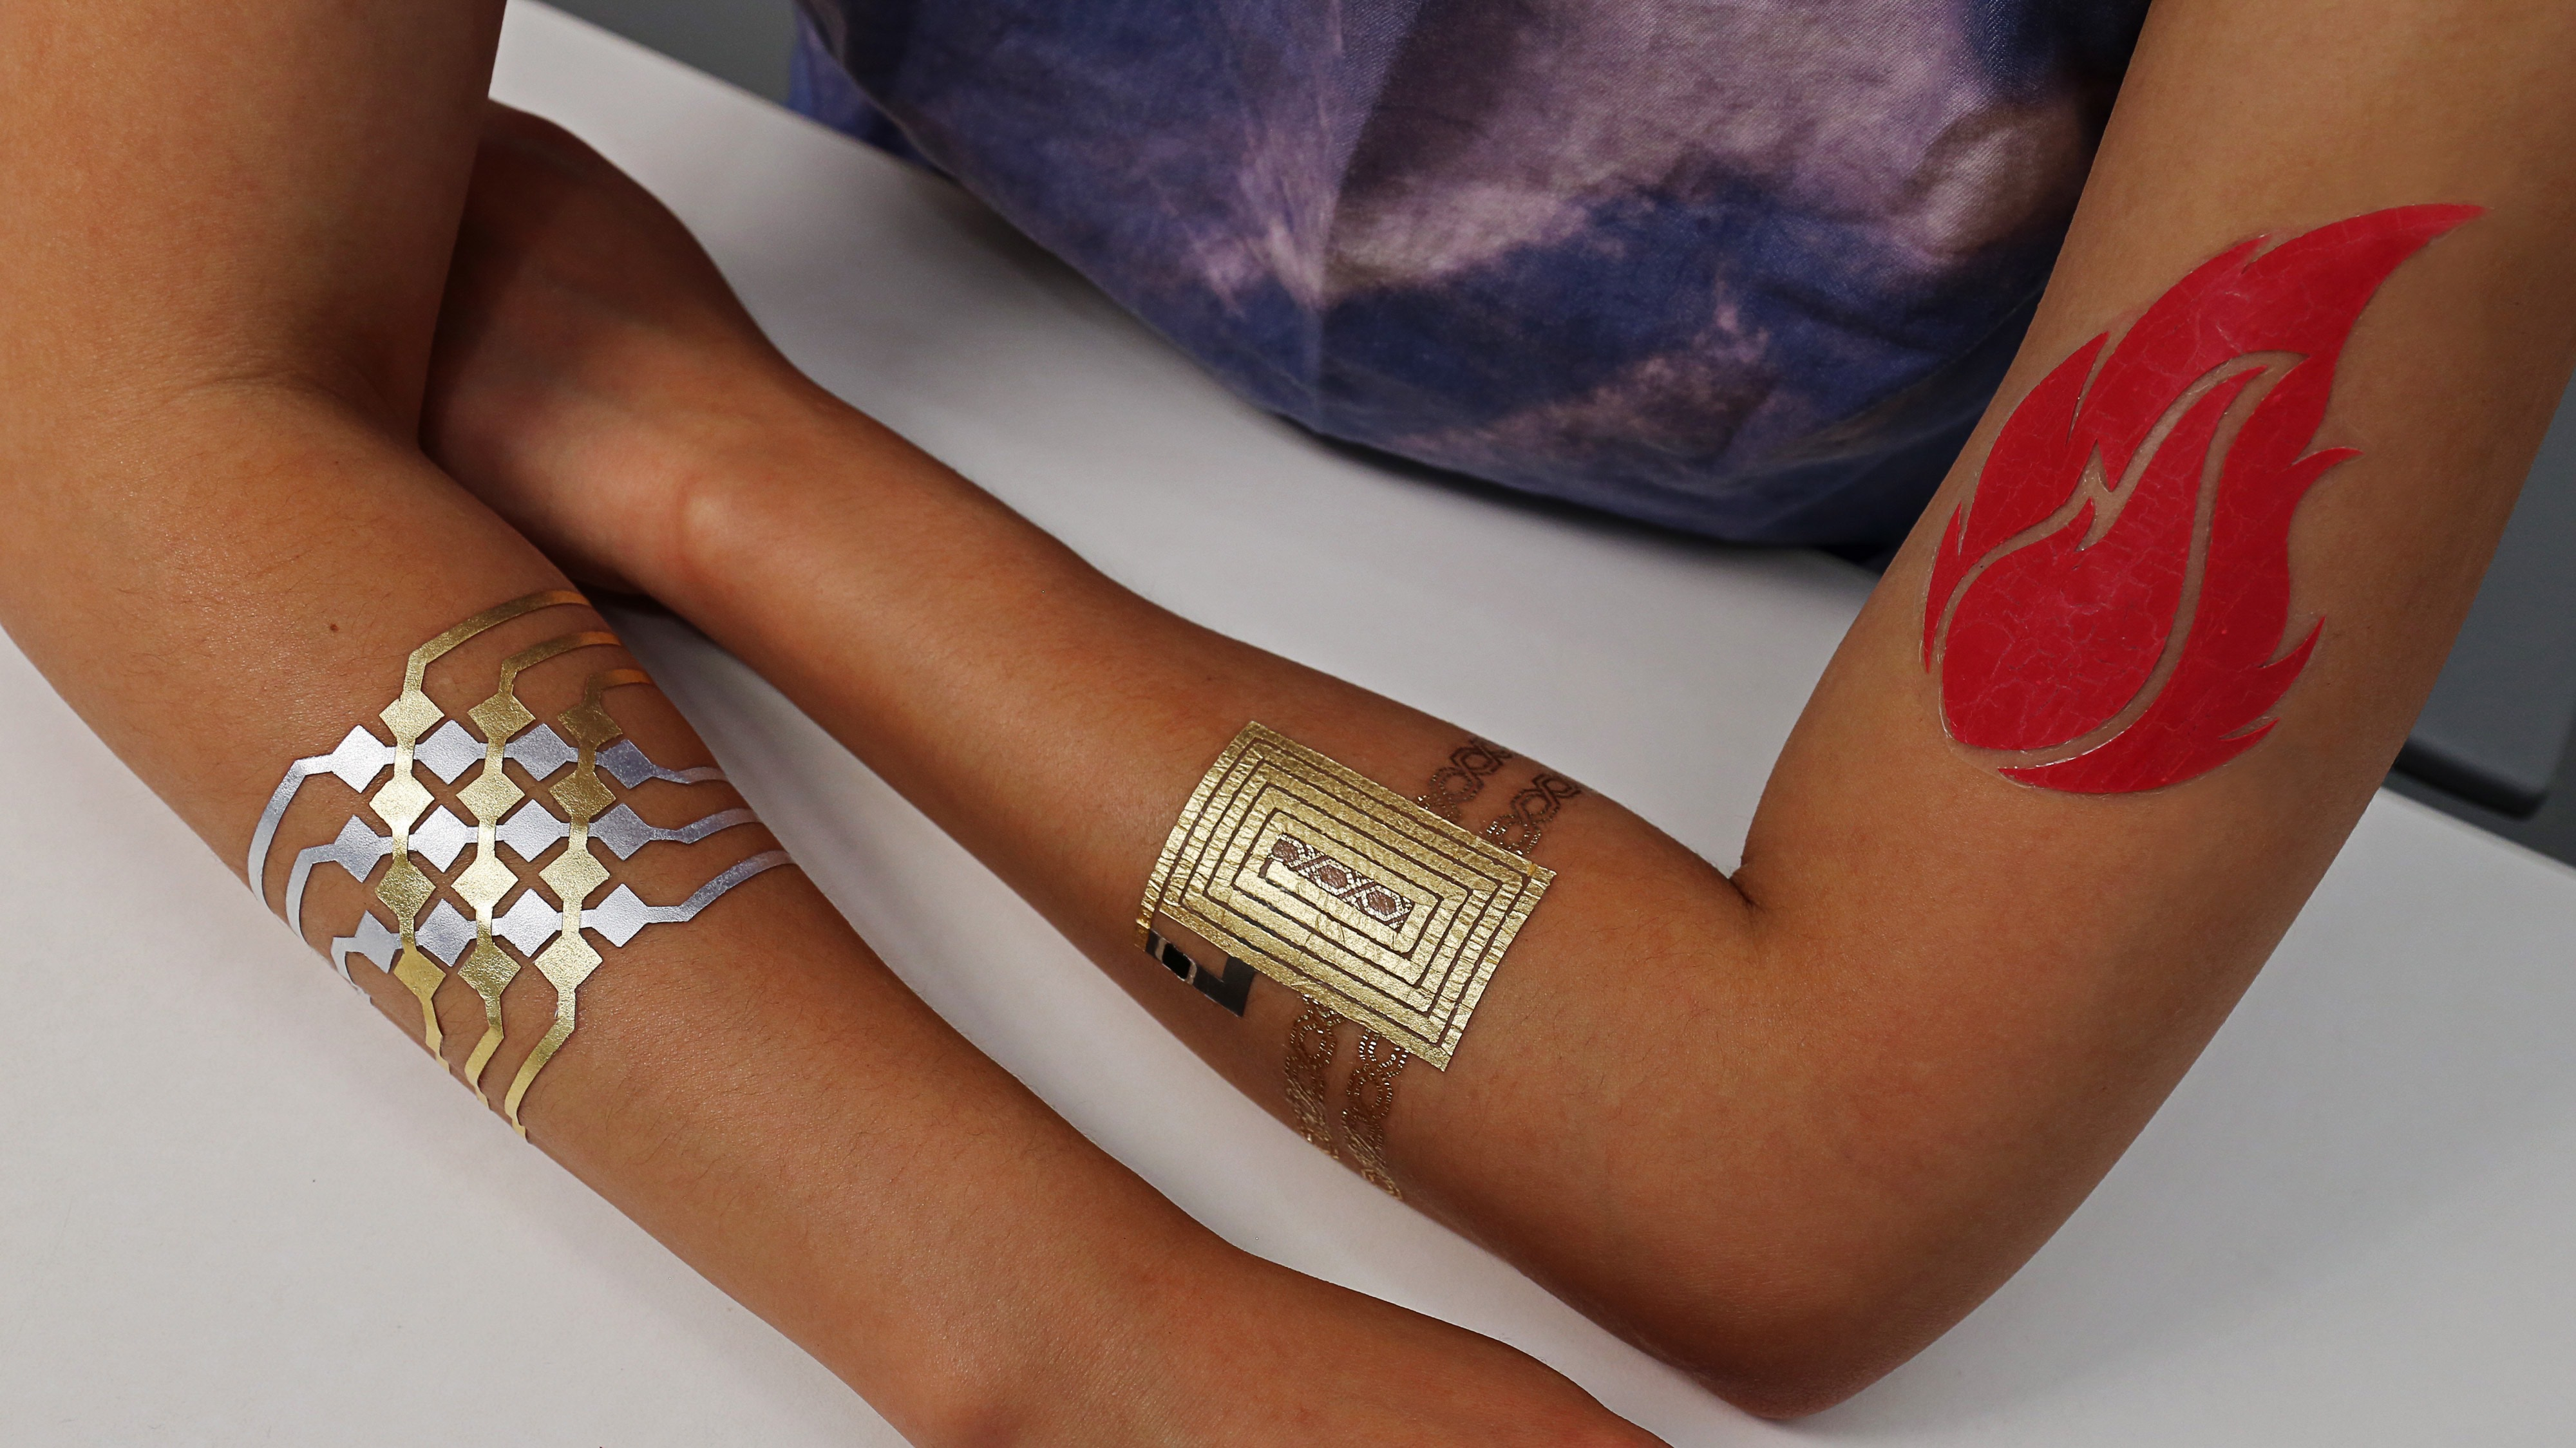 MIT shows off a smart tattoo that can turn your skin into a touchpad